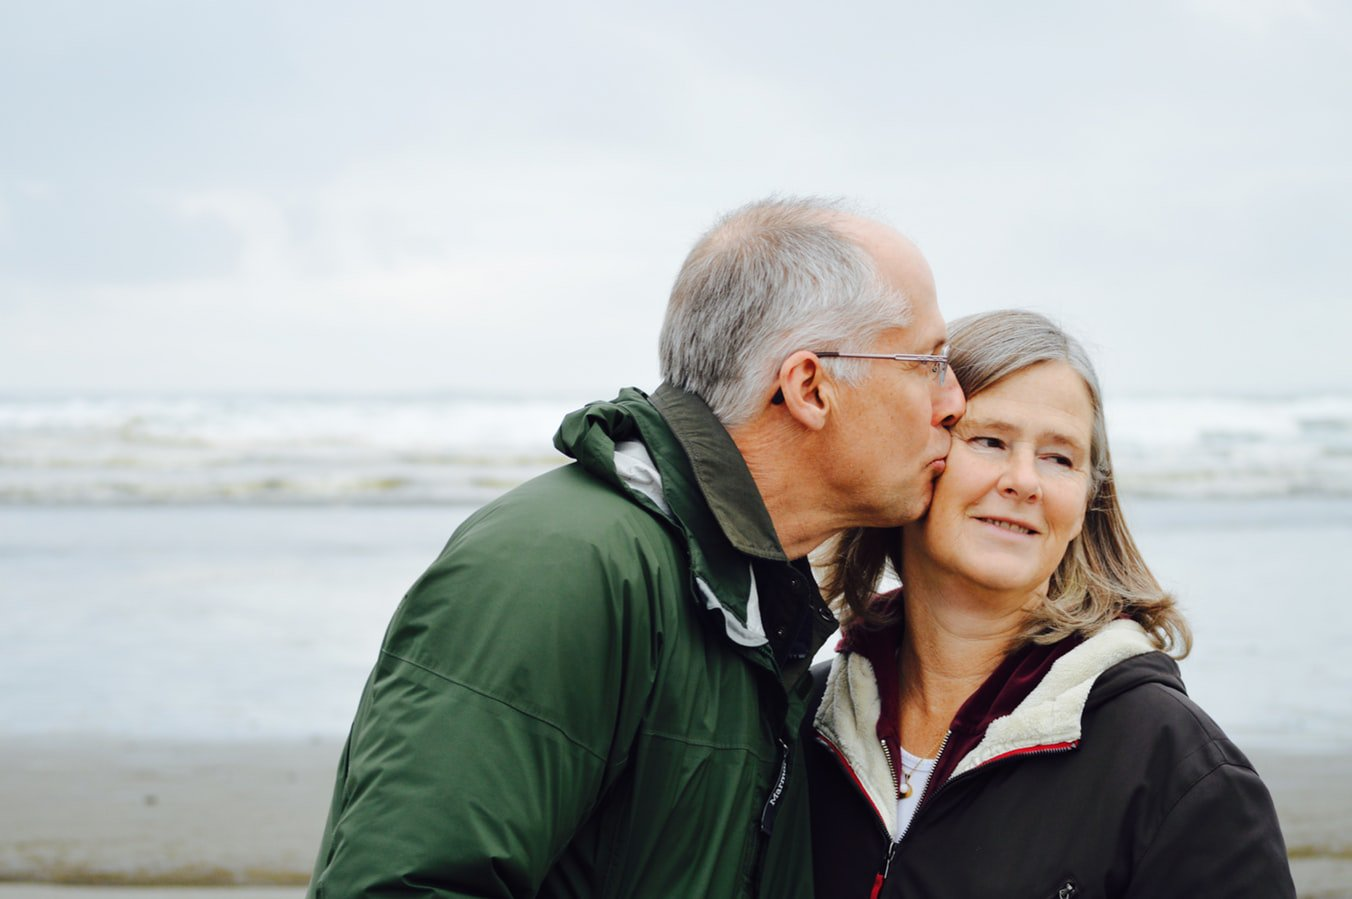 An older woman with Alzheimer's being kissed on the cheek by her husband